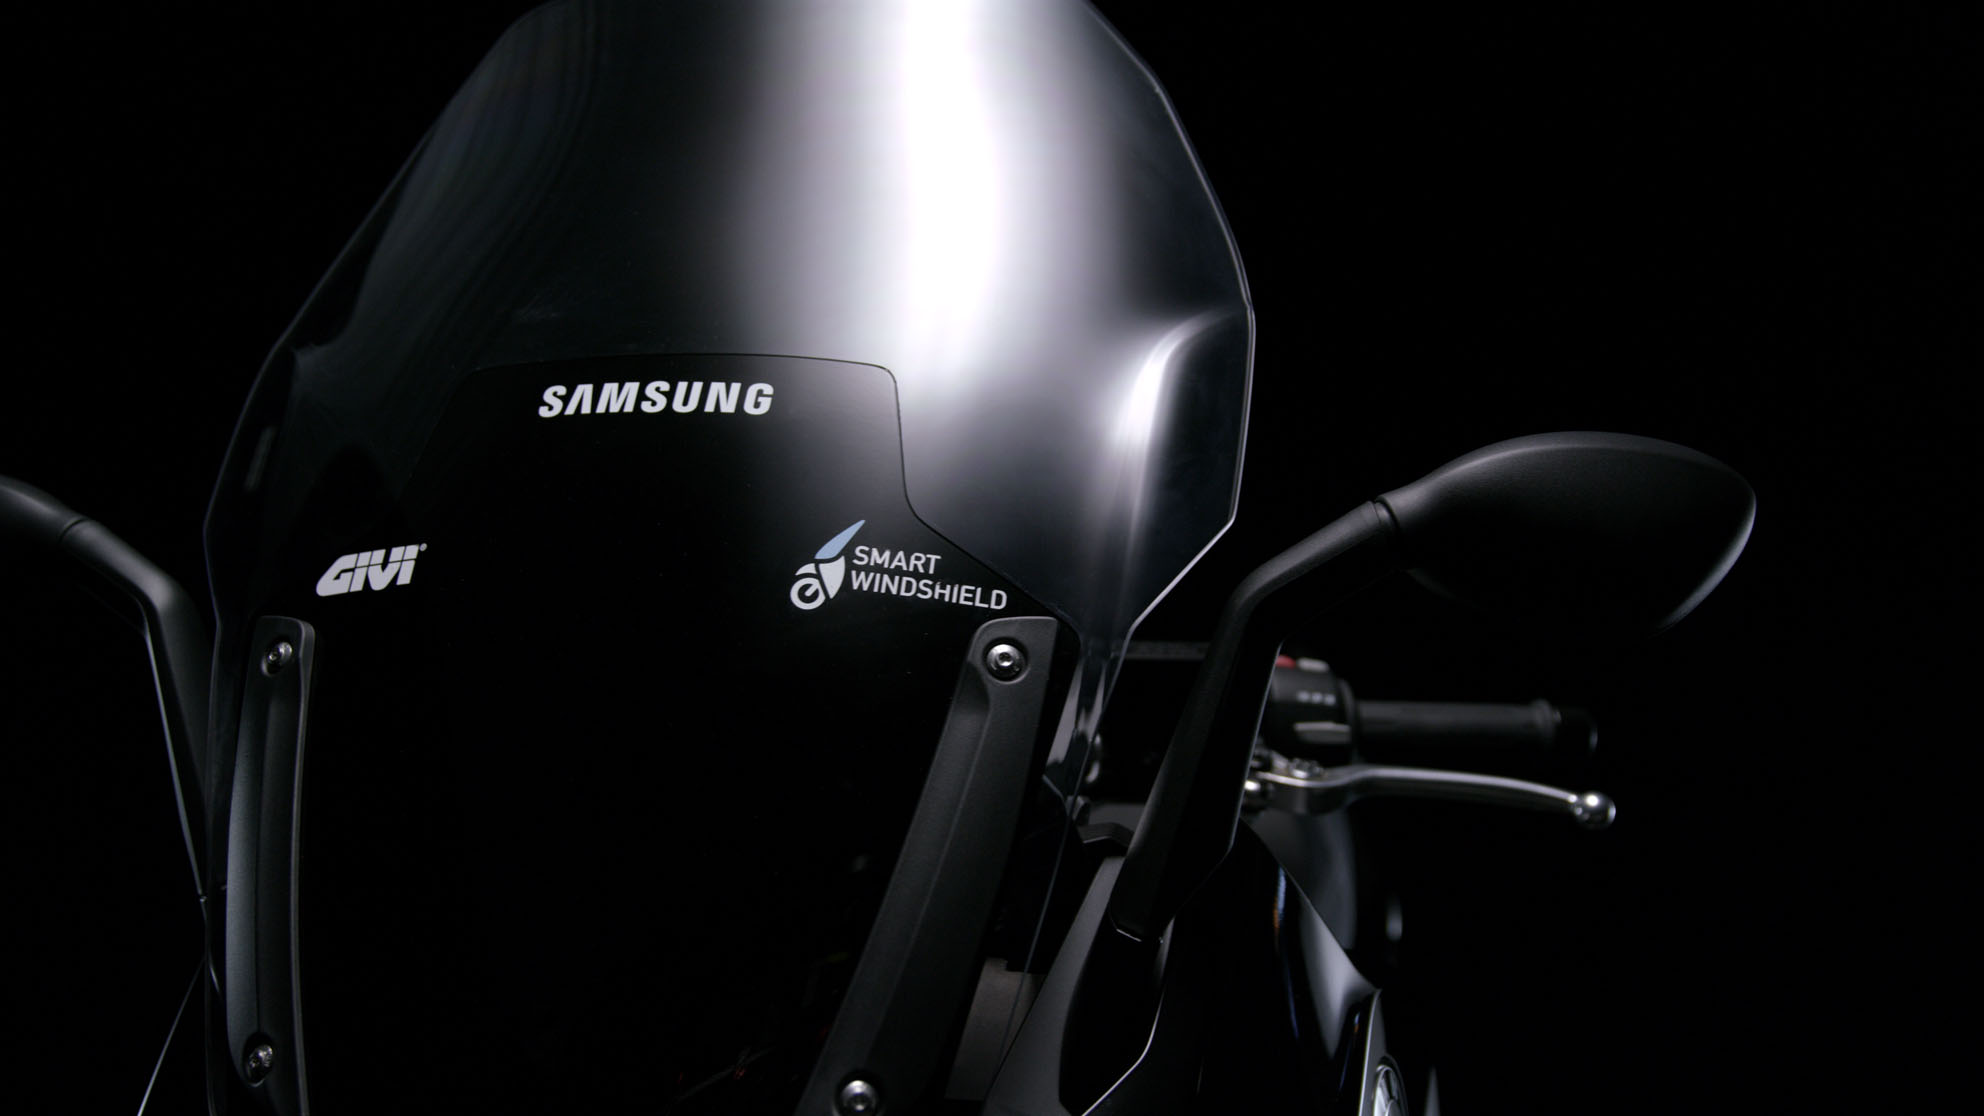 samsung-smart-windshield-apertura